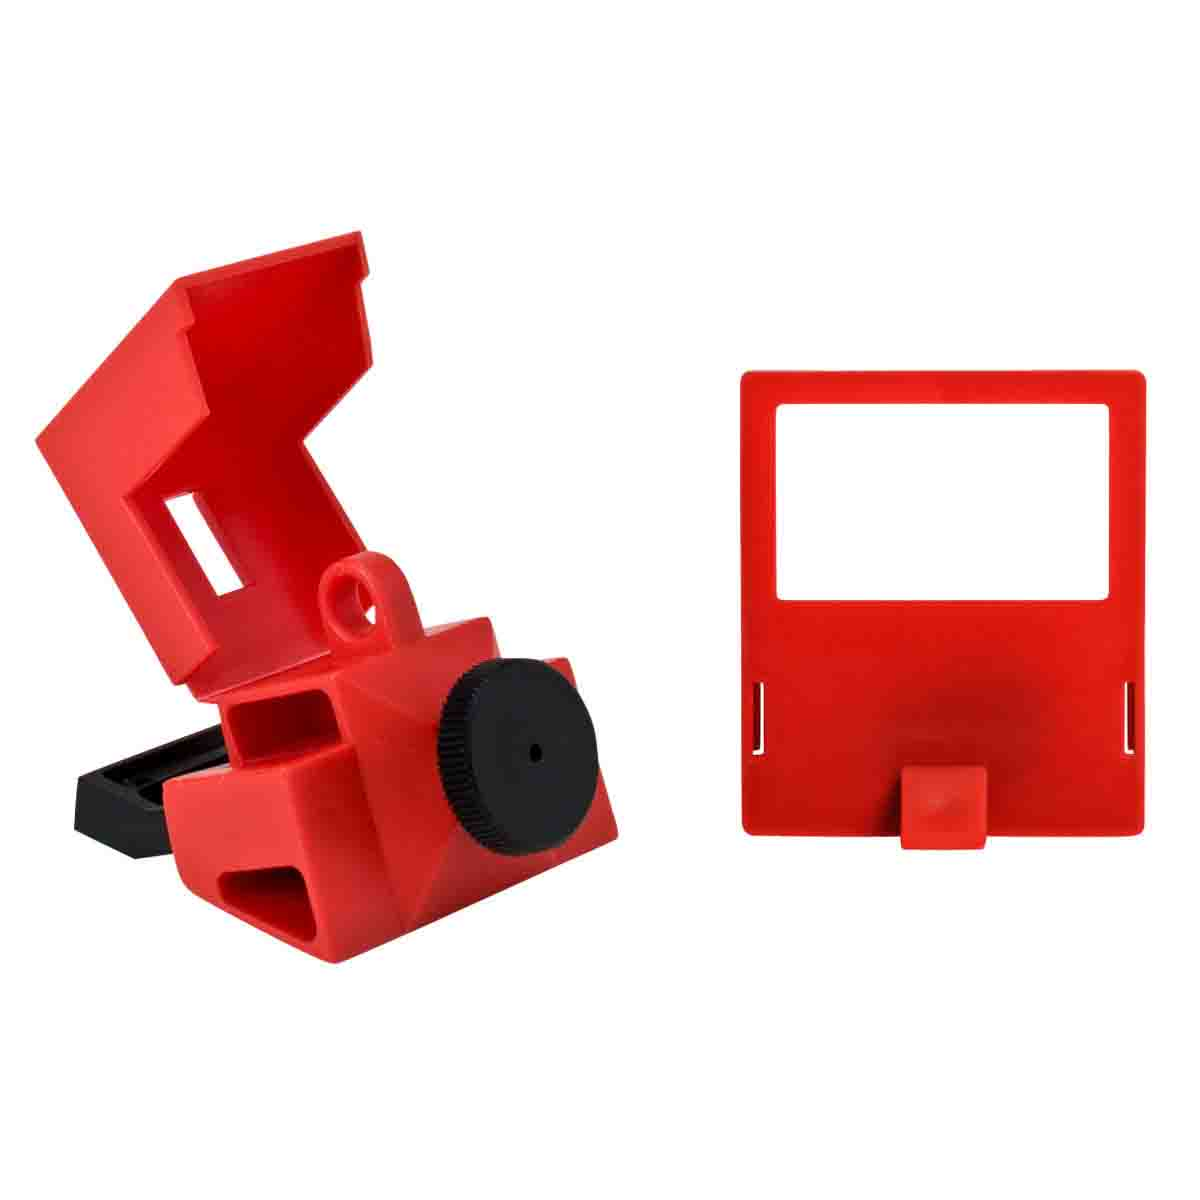 Brady® 65397 1-Pole Clamp-On Circuit Breaker Switch Lockout Device, For Use With 480/600 VAC Single Pole and Internal-Trip Multi-Pole Breaker, 1 Padlocks, 0.31 in Dia Max Padlock Shackle, LOTO-2 Polypropylene, Red